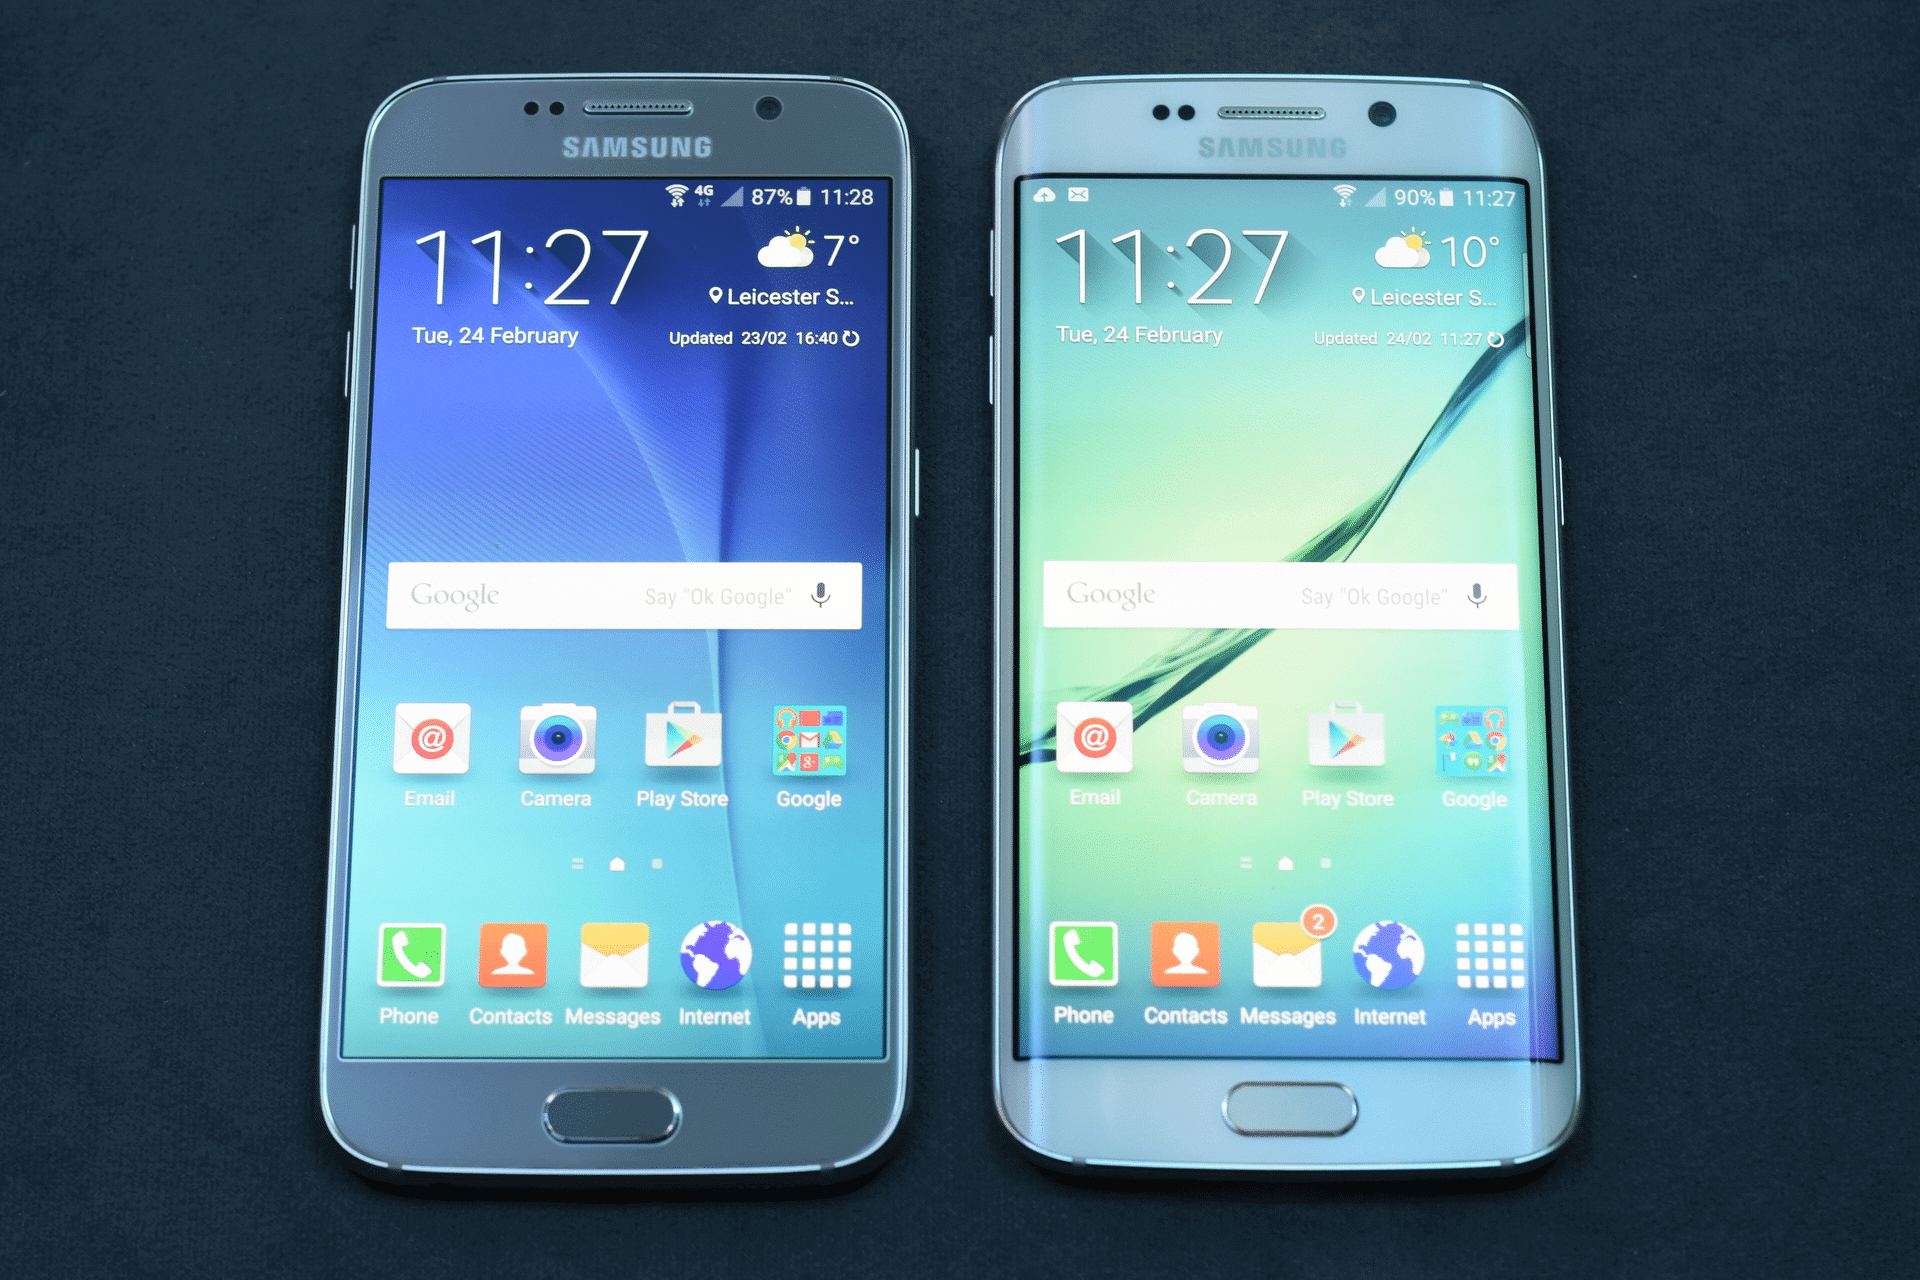 Update Samsung Galaxy S6 and S6 Edge To Android 7.0 Nougat Official Firmware 1